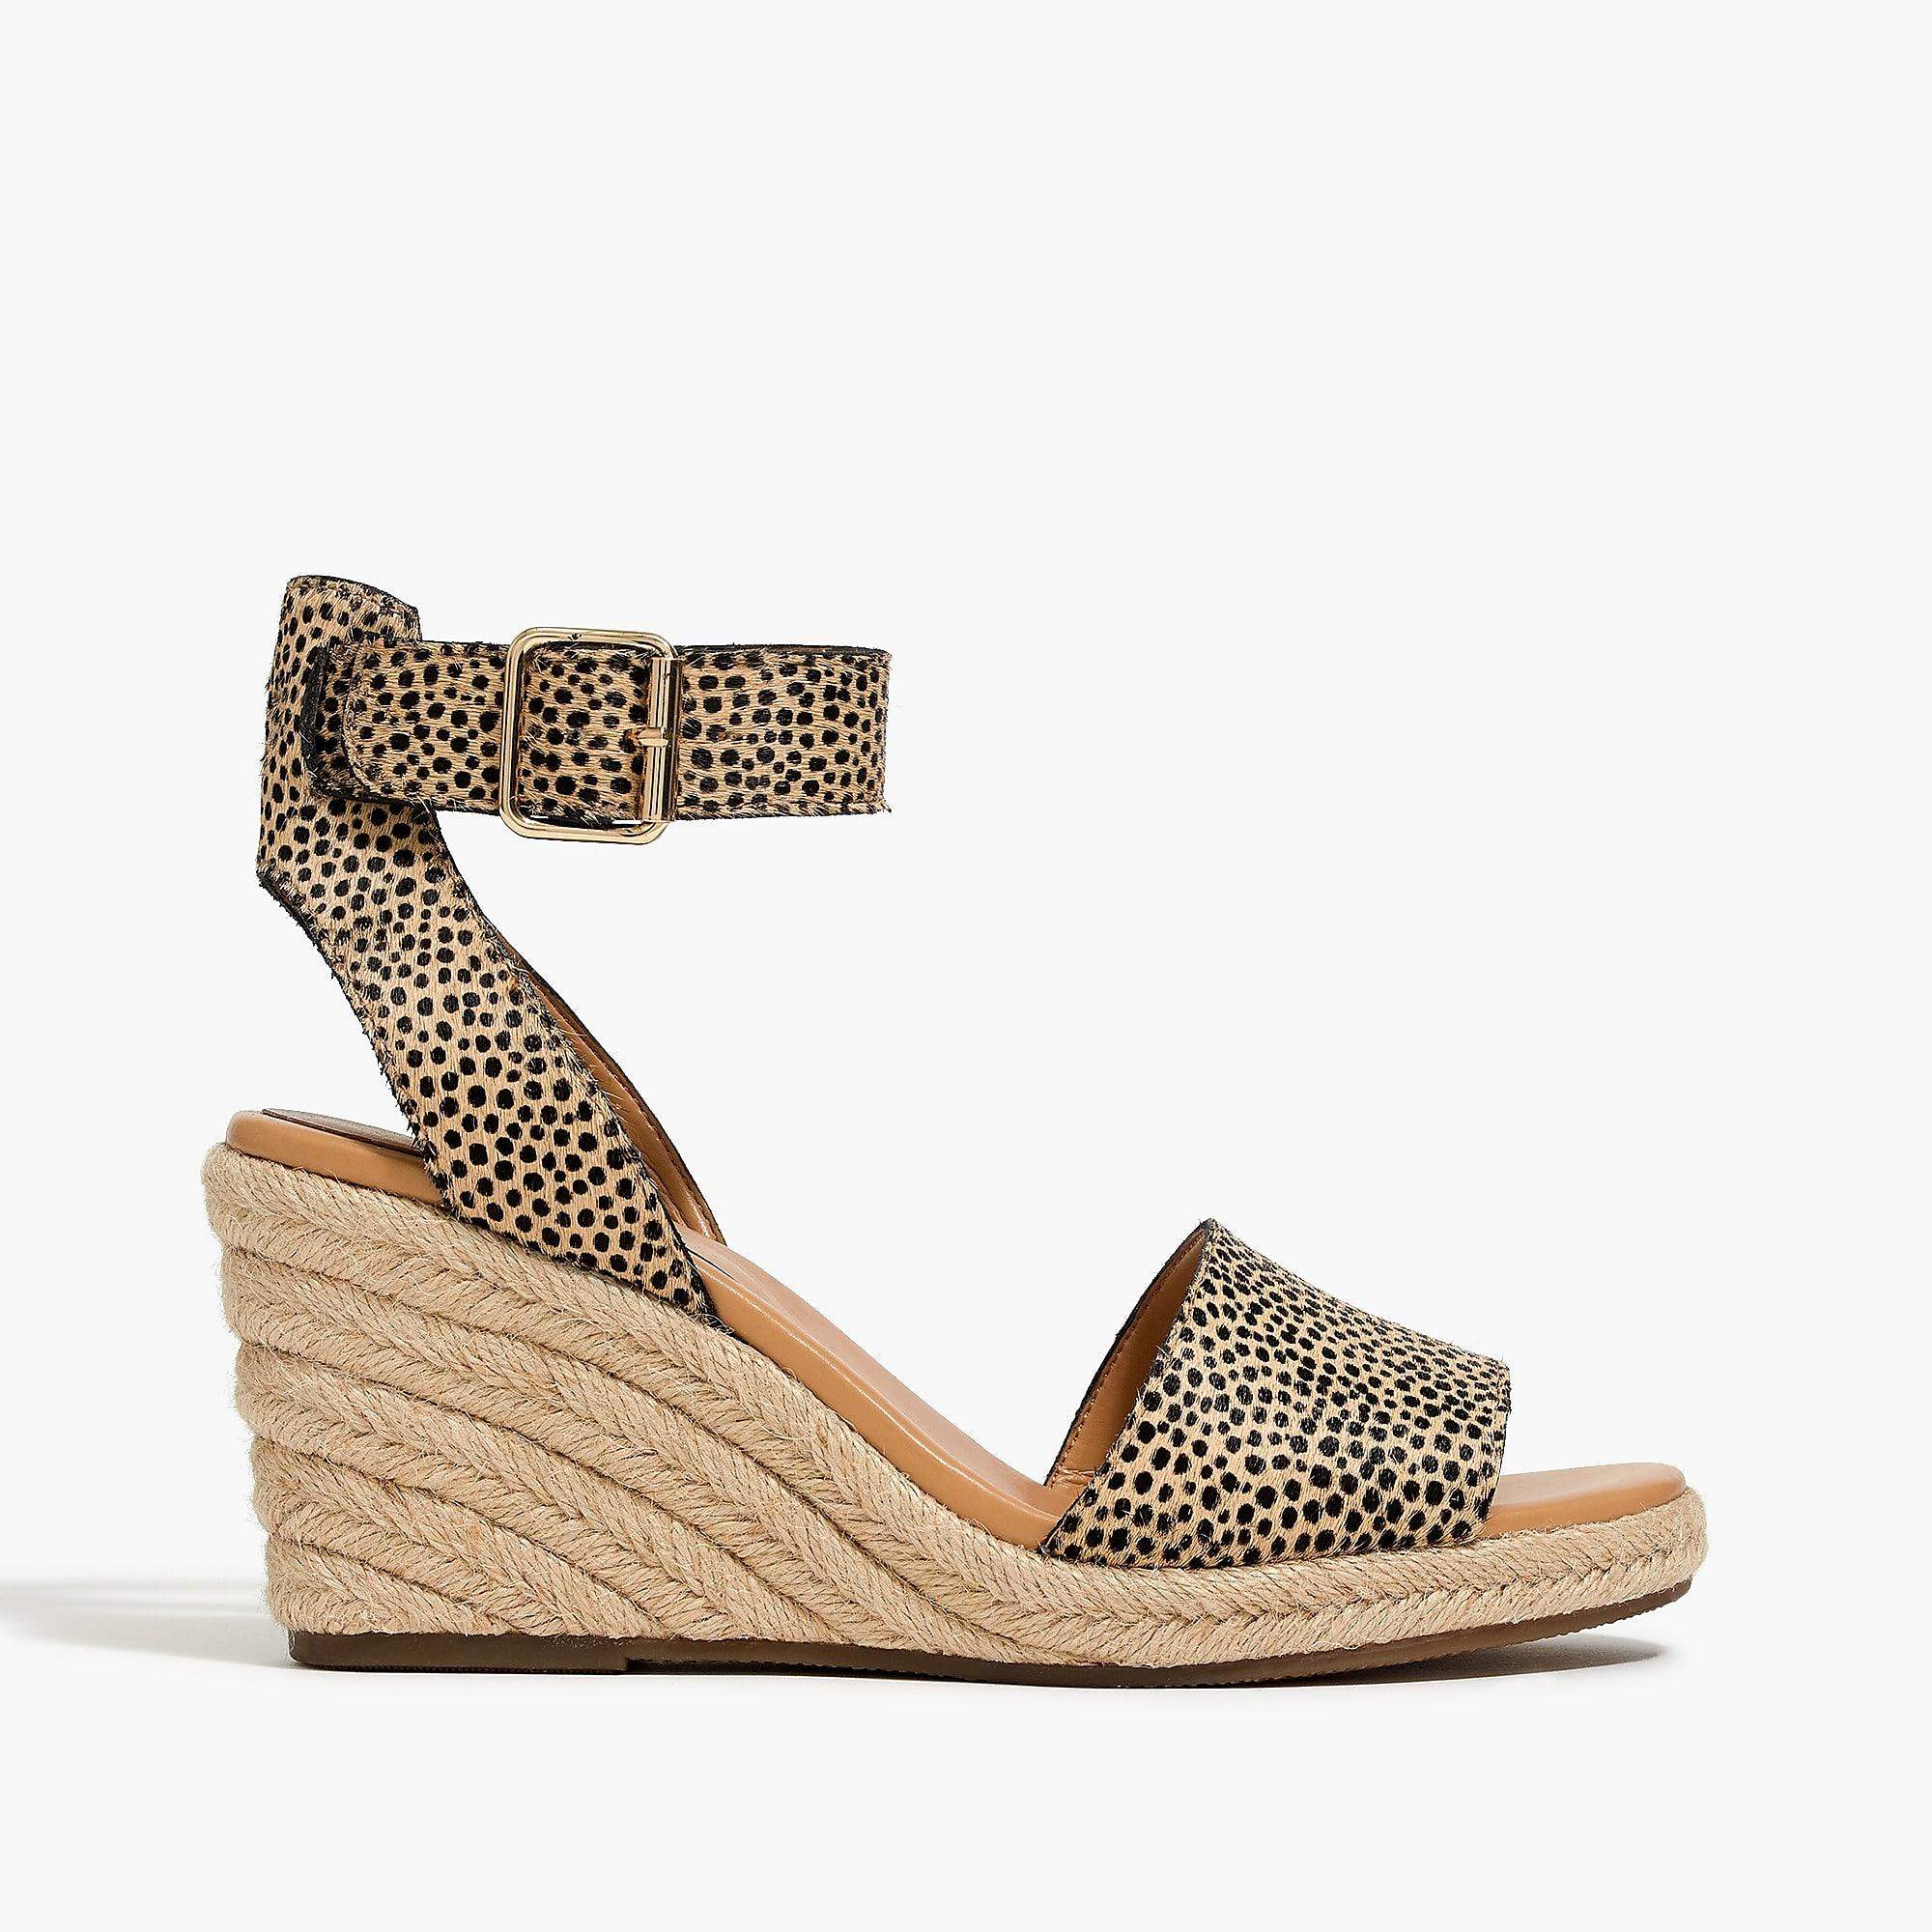 7c5b1a21471 Women's Calf Hair Espadrille Wedge Sandals